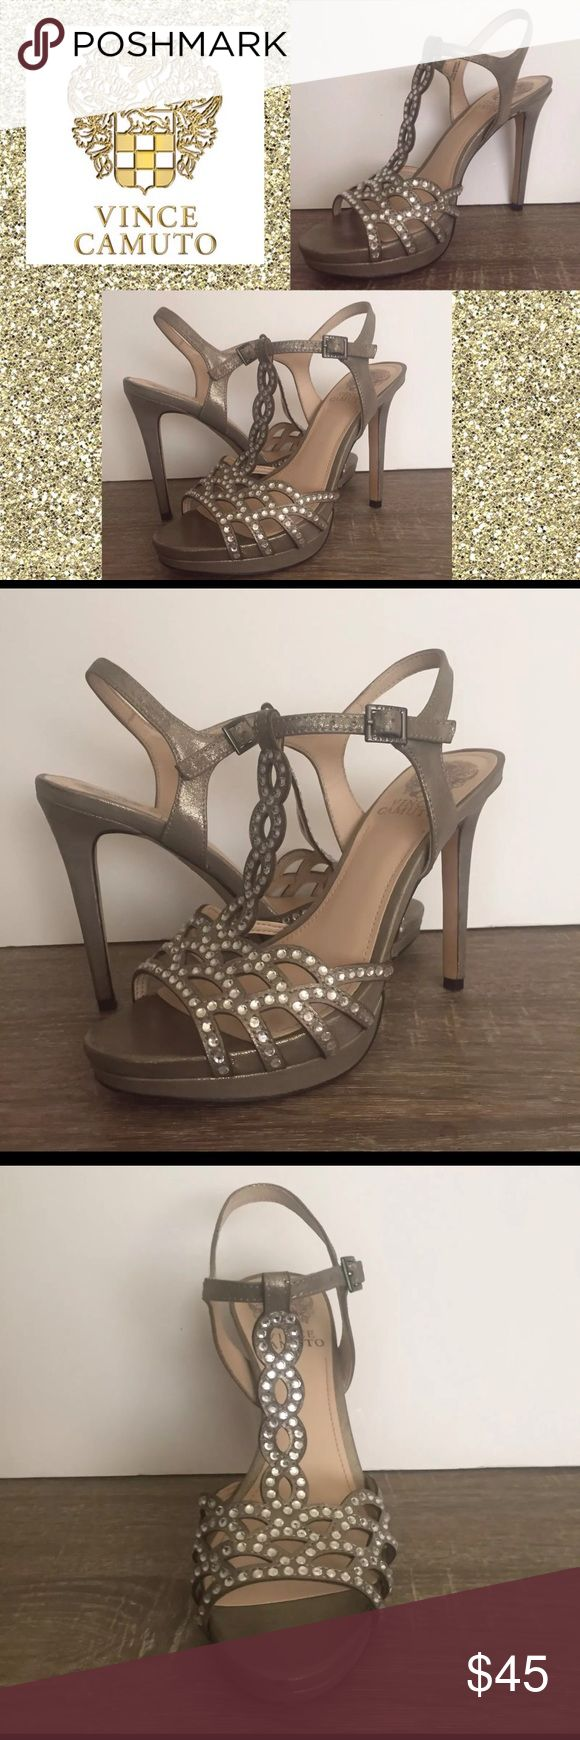 Vince Camuto Cristiana Women's Platform Metallic Perfectly perforated with eye-catching laser-cut geometric details and rhinestone embellishments, the party star Cristiana sandal offers an alluring way to showcase a little skin.  Details: -In good pre-owned condition. Small scuffs around shoes. Please see pictures -Size: 5 1/2 -Color: Metallic Silver -Leather upper, man-made lining, and sole adjustable buckle, light texture Vince Camuto Shoes Platforms